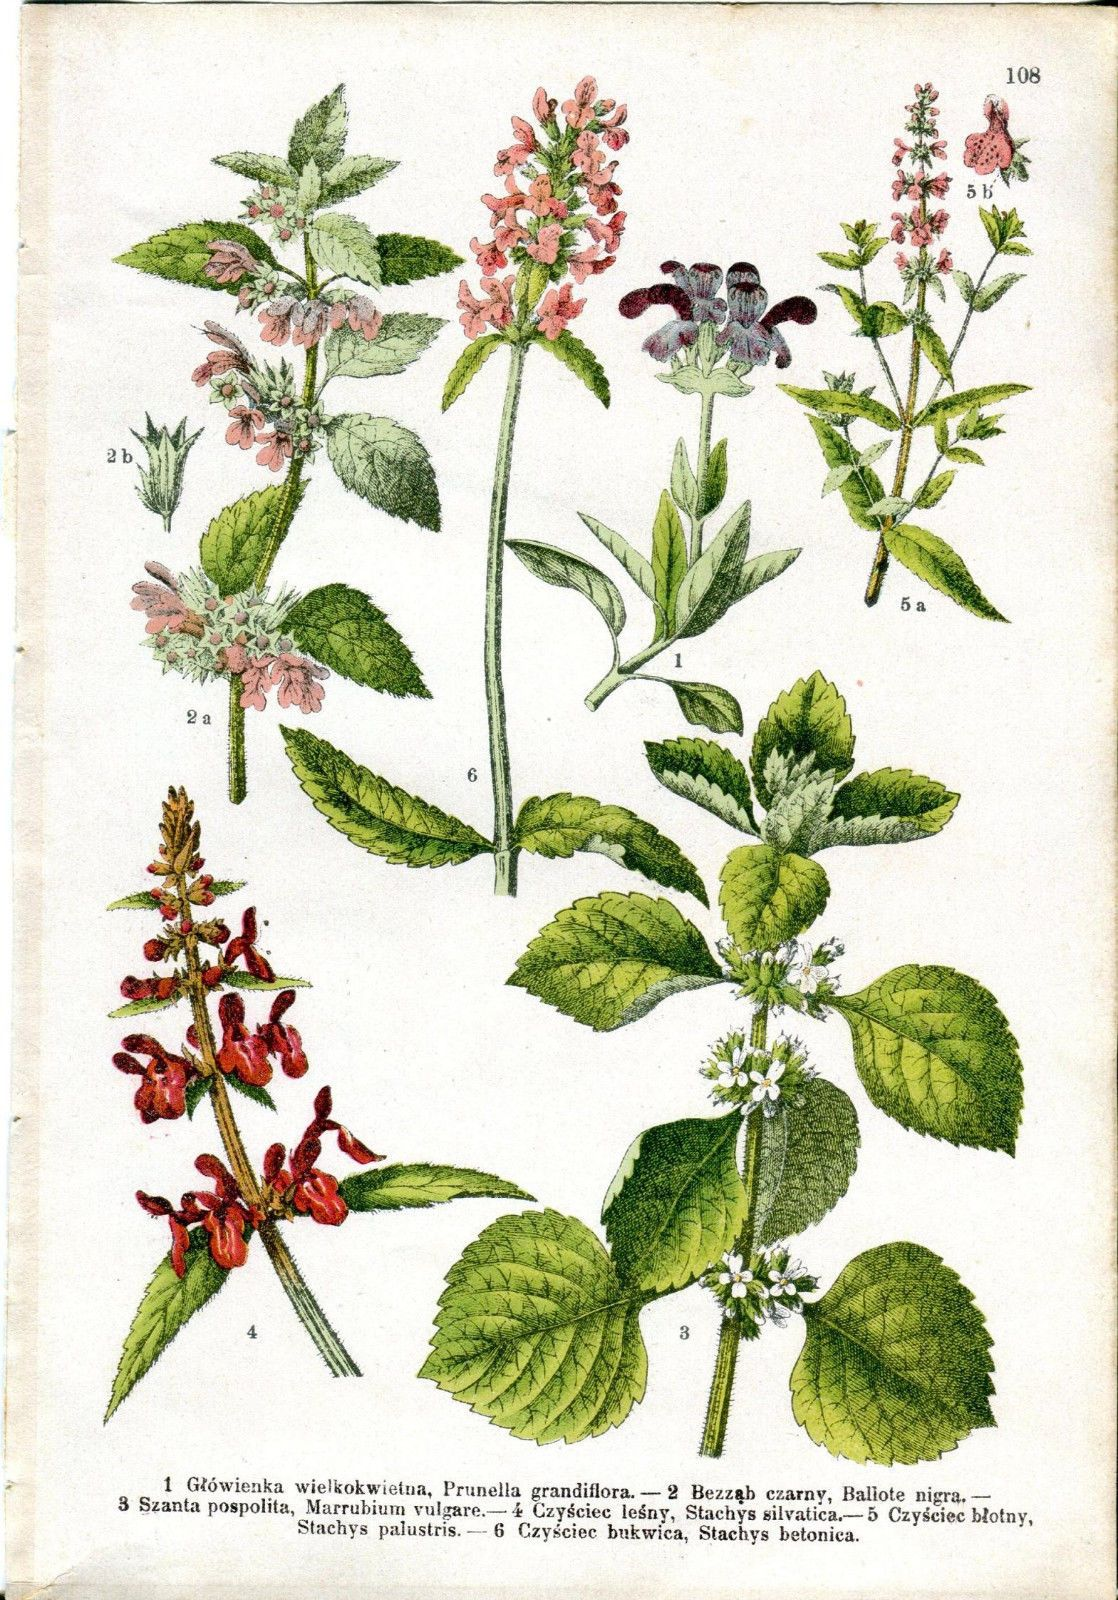 1900 BOTANICAL Large-flowered selfheal Hedge woundwort Antique Print | eBay